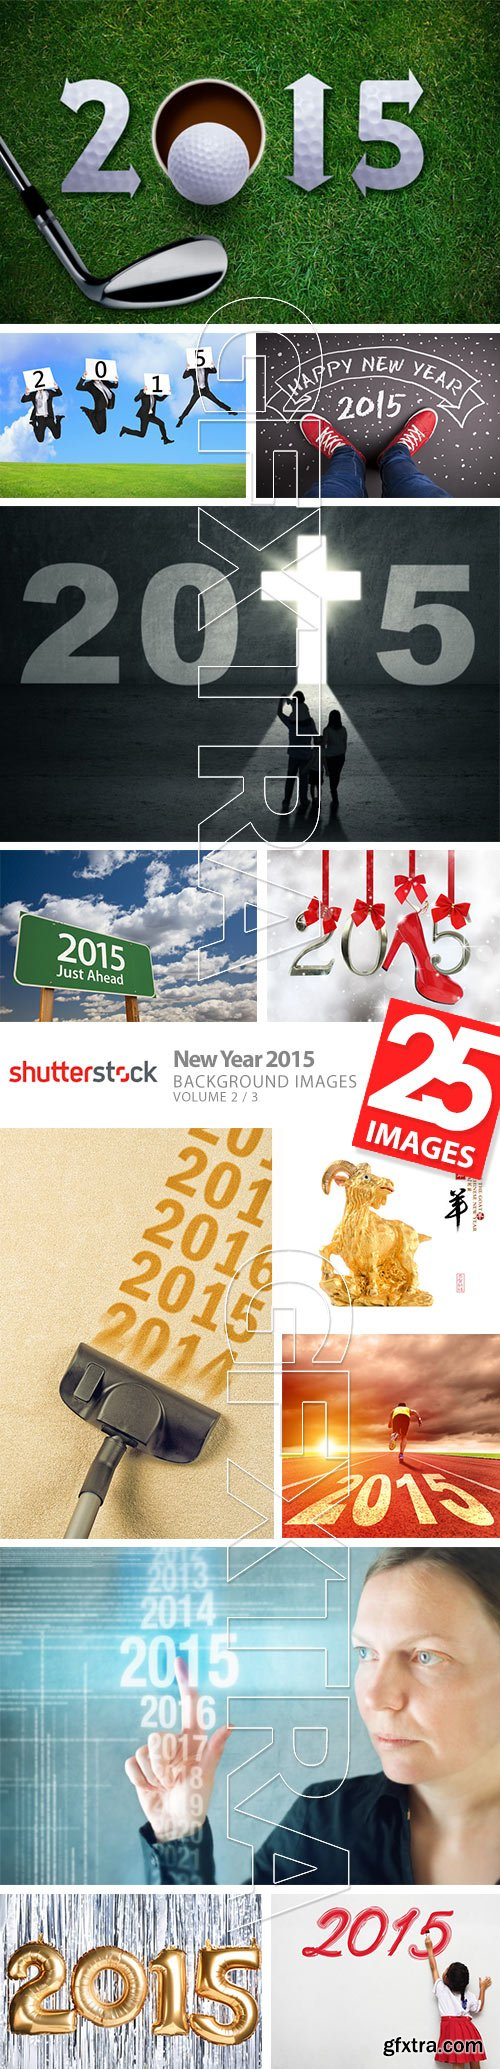 New Year 2015 - Background Images Vol.2, 25xJPG